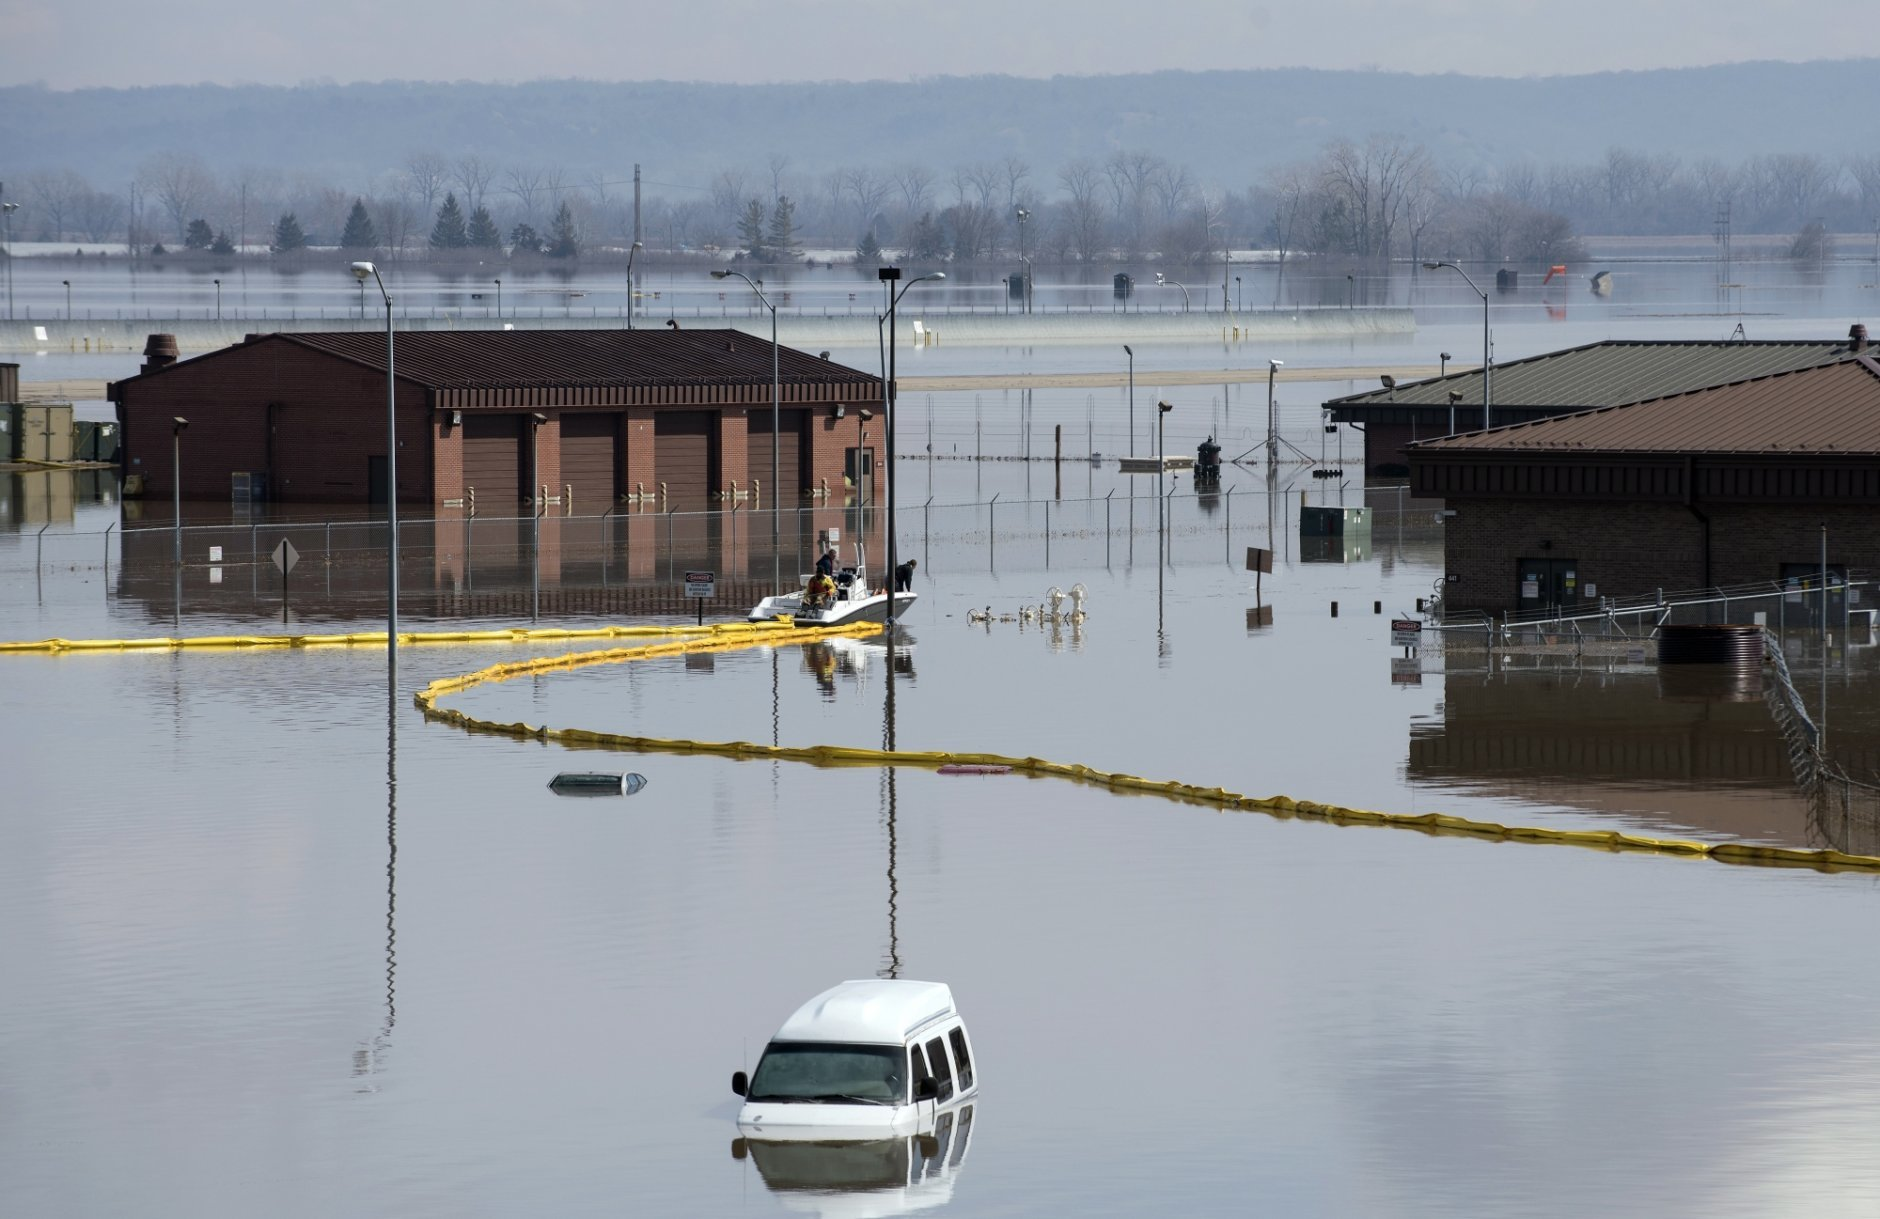 In this March 18, 2019 photo released by the U.S. Air Force, environmental restoration employees deploy a containment boom from a boat on Offutt Air Force Base in Neb., as a precautionary measure for possible fuel leaks in the flooded area. Surging unexpectedly strong and up to 7 feet high, the Missouri River floodwaters that poured on to much the Nebraska air base that houses the U.S. Strategic Command overwhelmed the frantic sandbagging by troops and their scramble to save sensitive equipment, munitions and aircraft. (Delanie Stafford, The U.S. Air Force via AP)